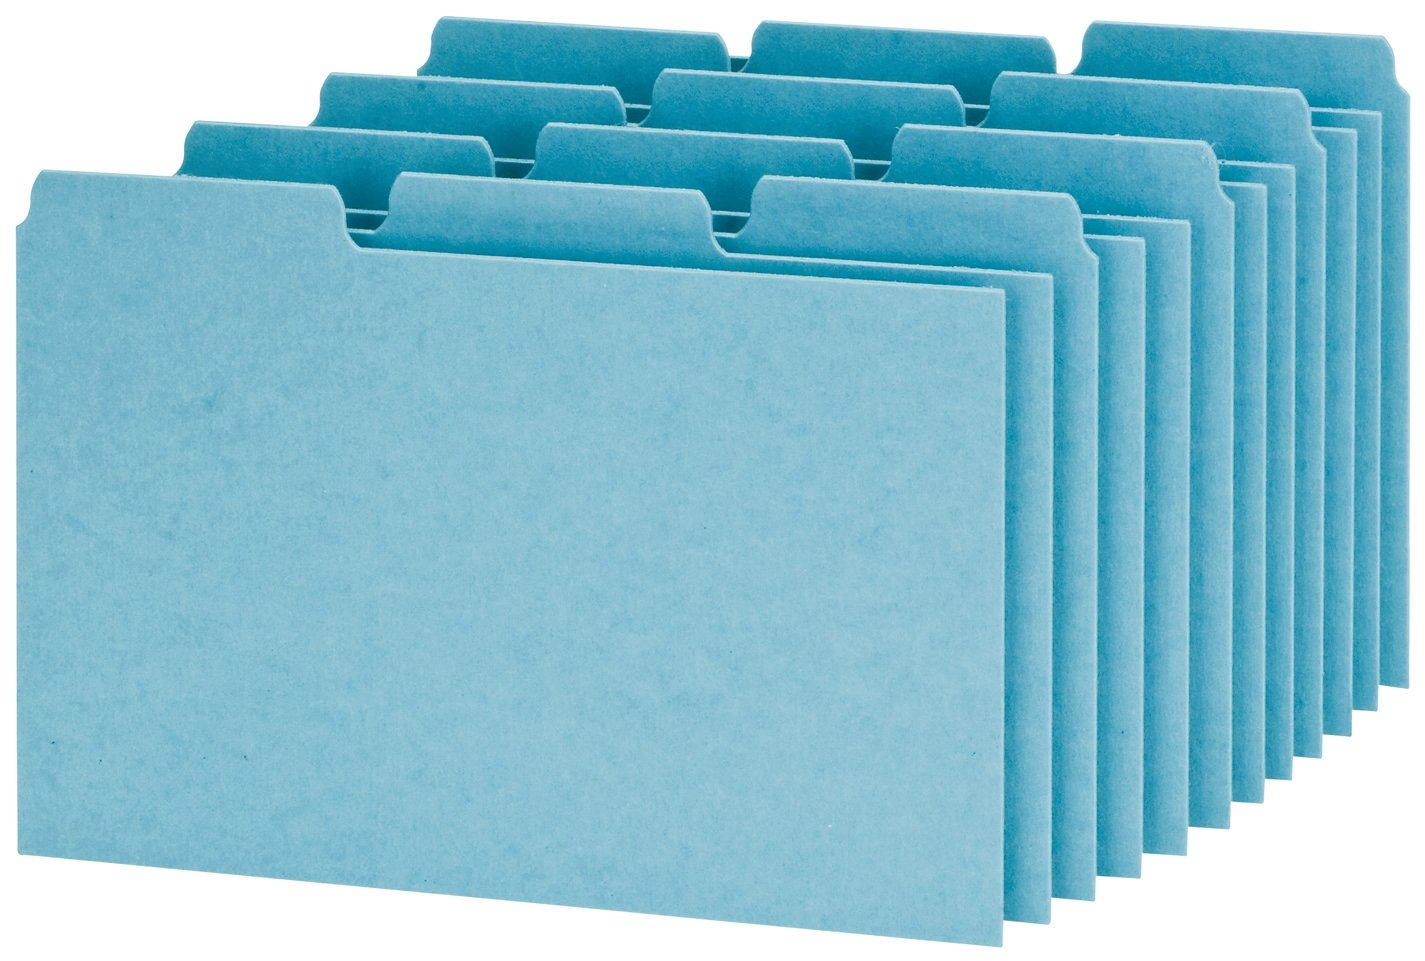 Oxford Index Card Guides with Blank Tabs, 4 x 6 Inches, 1/3 Cut Tabs, Blue, 100 per Box (P413) by Esselte